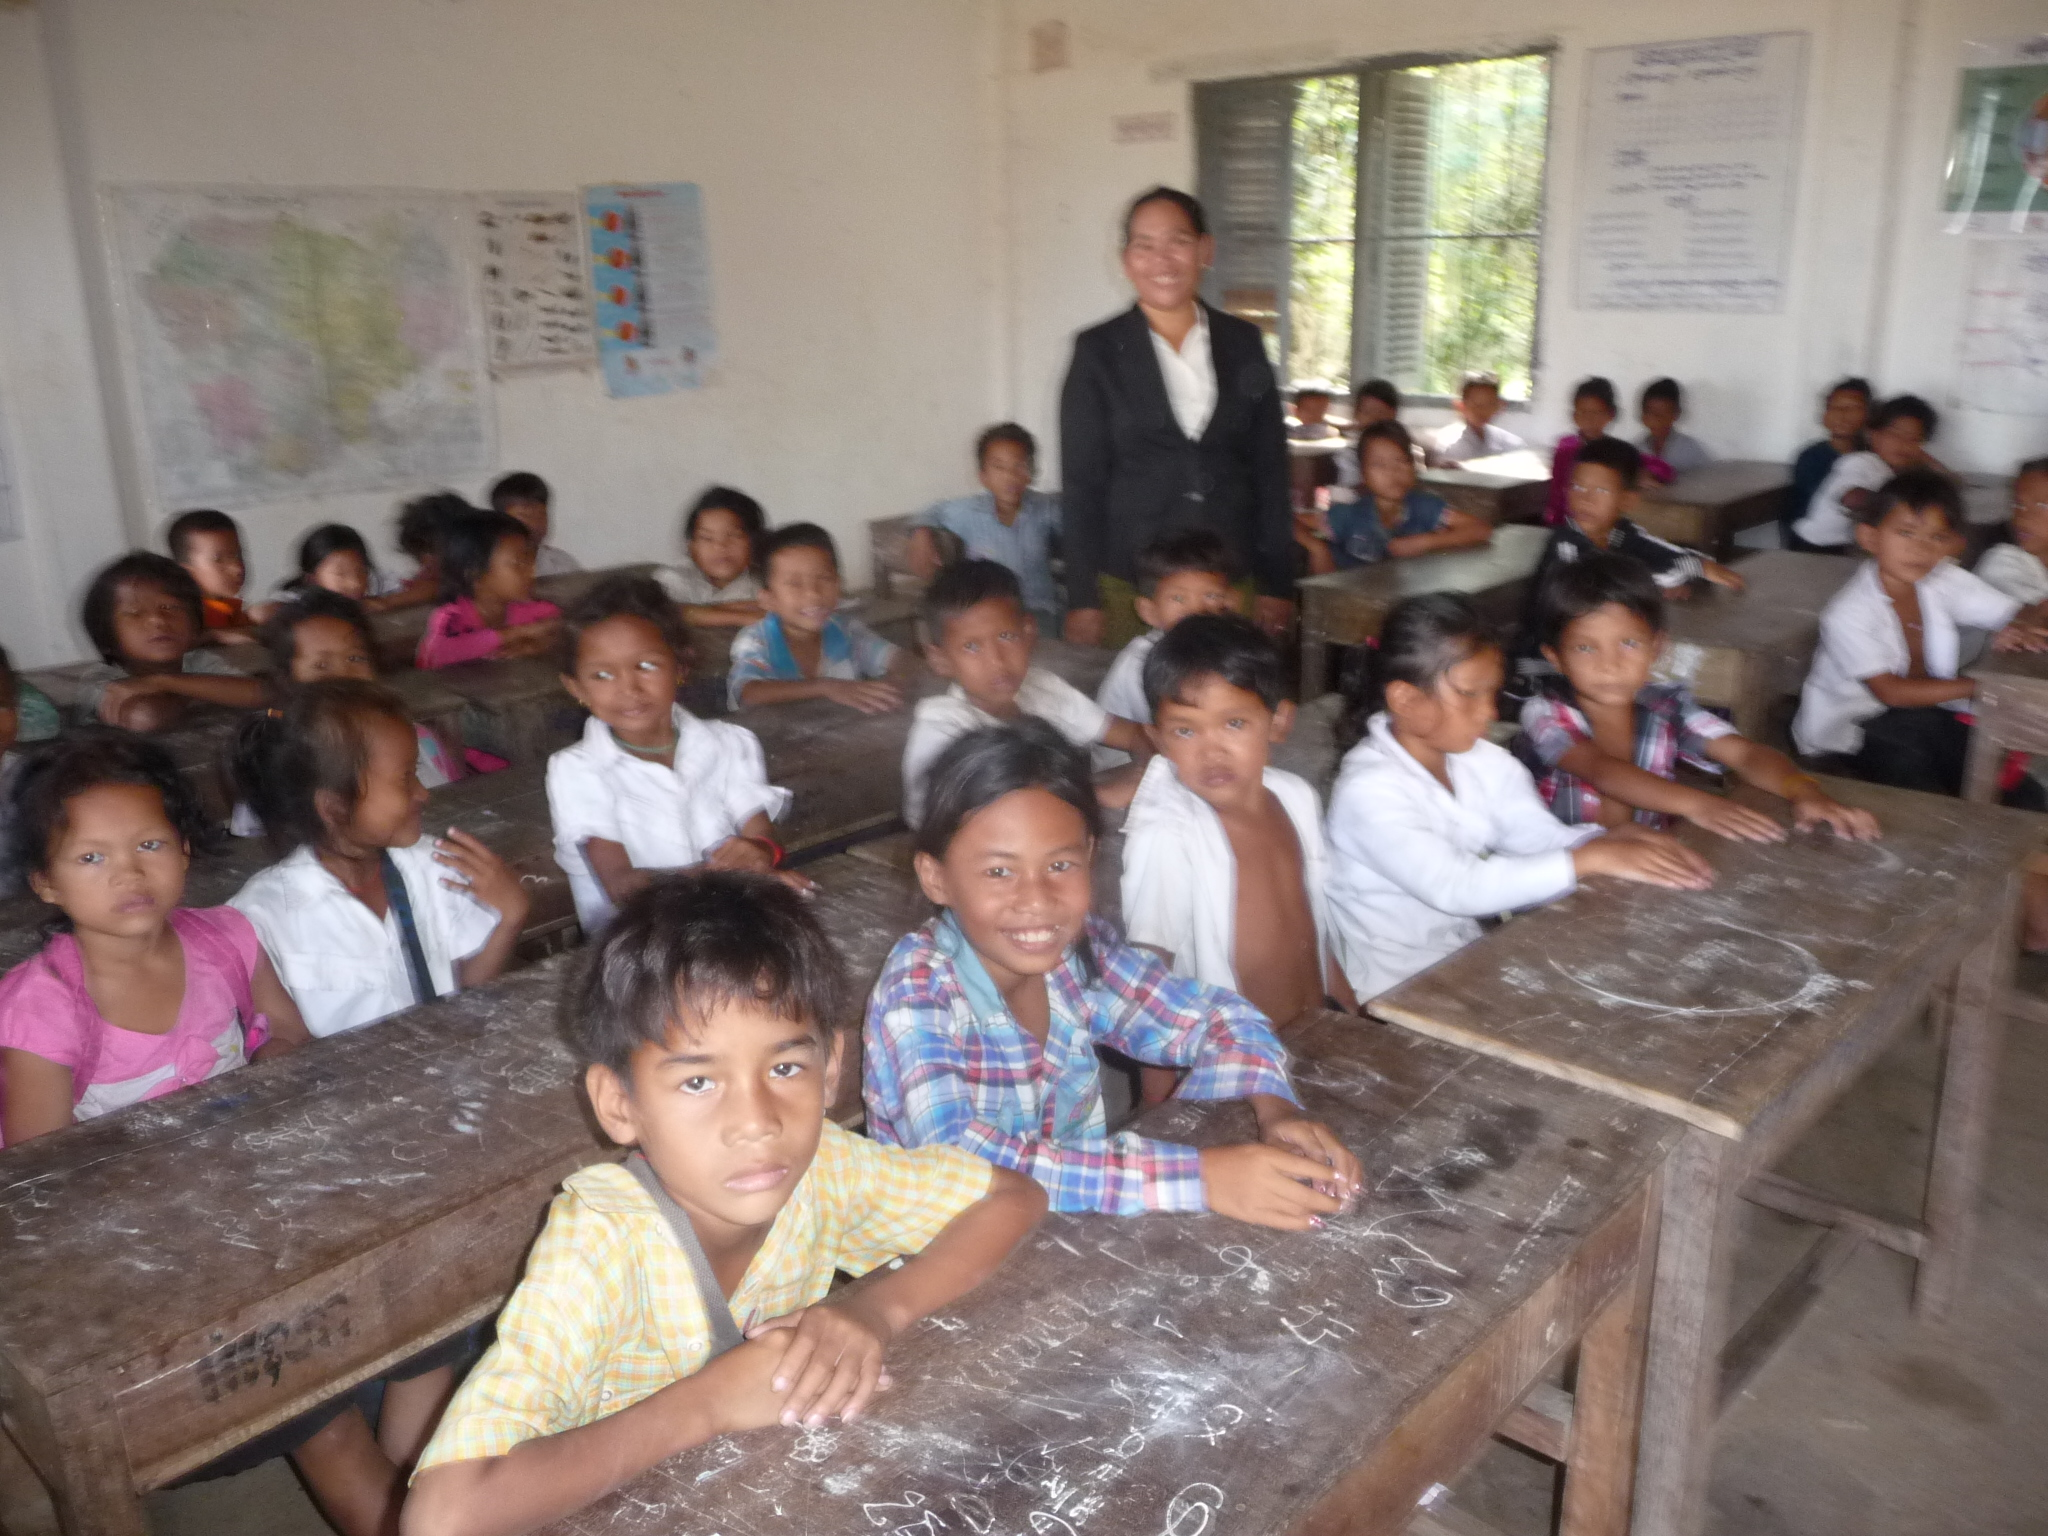 education in cambodia Left in ashes, over the last decade education in cambodia has begun to be re-established, setting in motion a prosperous future.